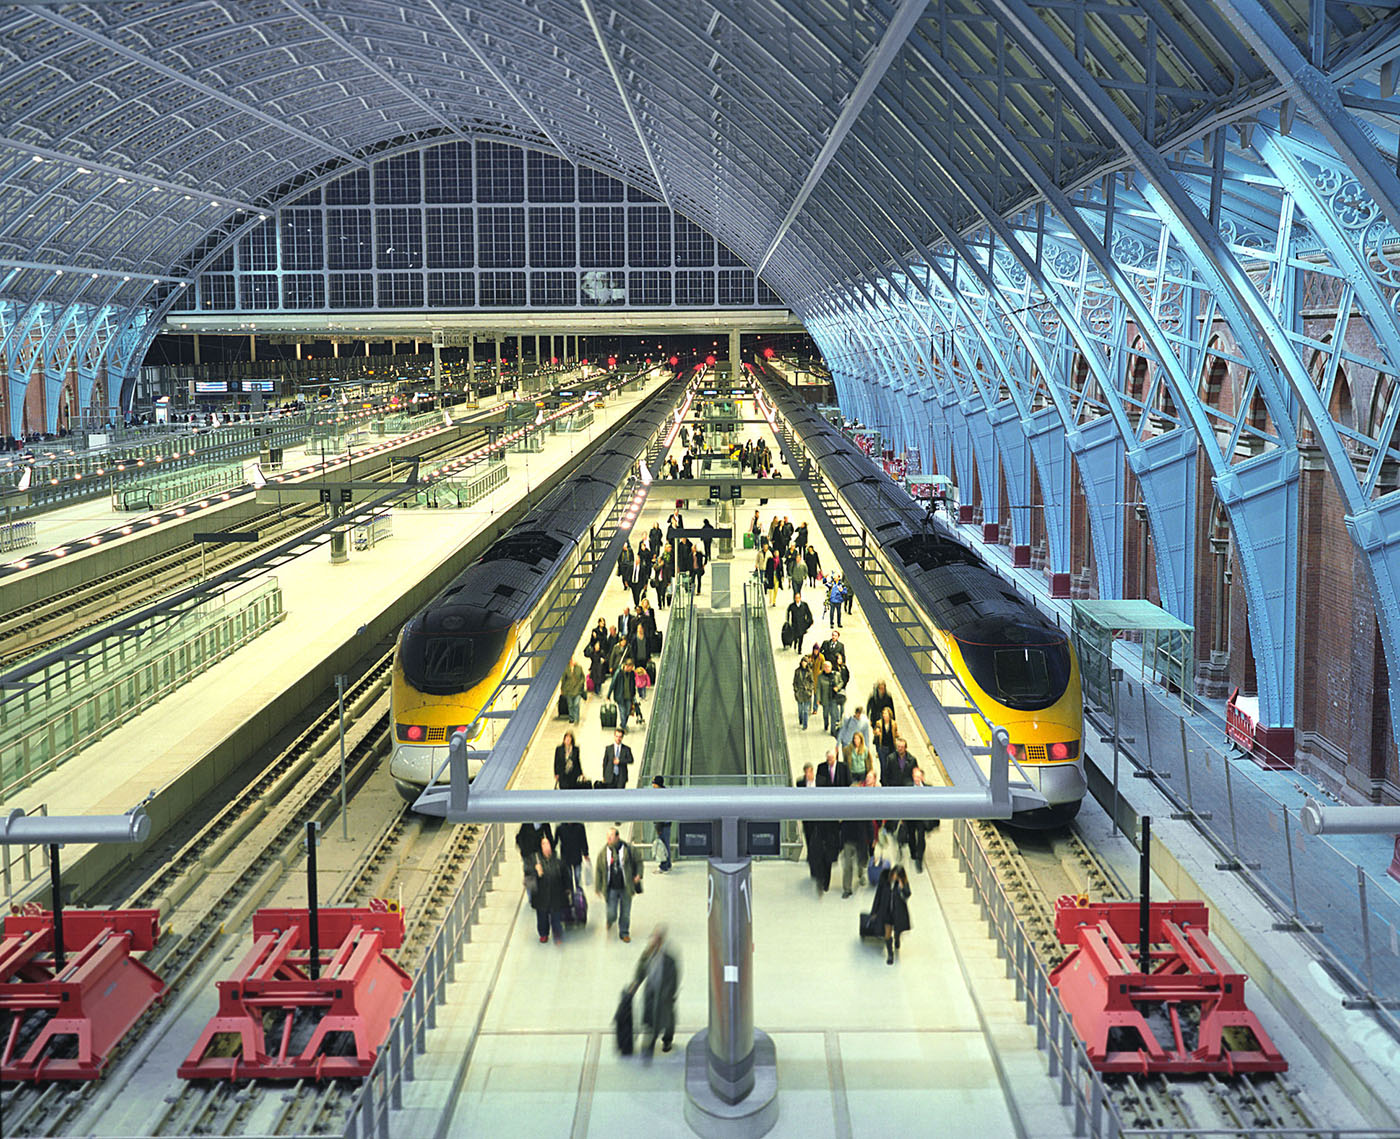 Passengers disembark from Eurostar trains on the first day of service at the Barlow Shed at St Pancras International.